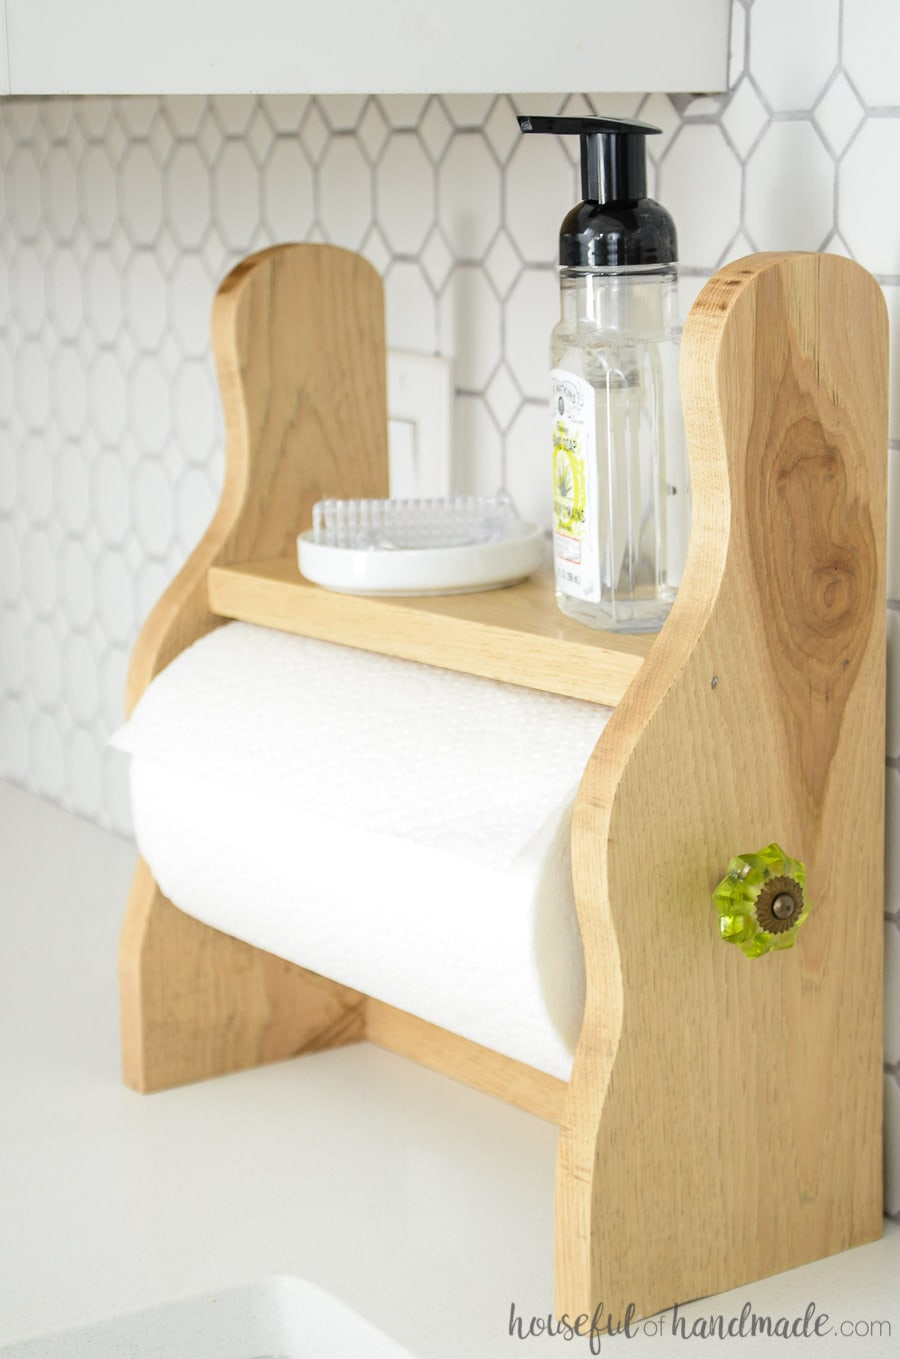 Make this farmhouse paper towel holder in just 15 minutes with this easy tutorial. The cute sides are cut with a jig saw and the little shelf keeps your kitchen clean. Housefulofhandmade.com